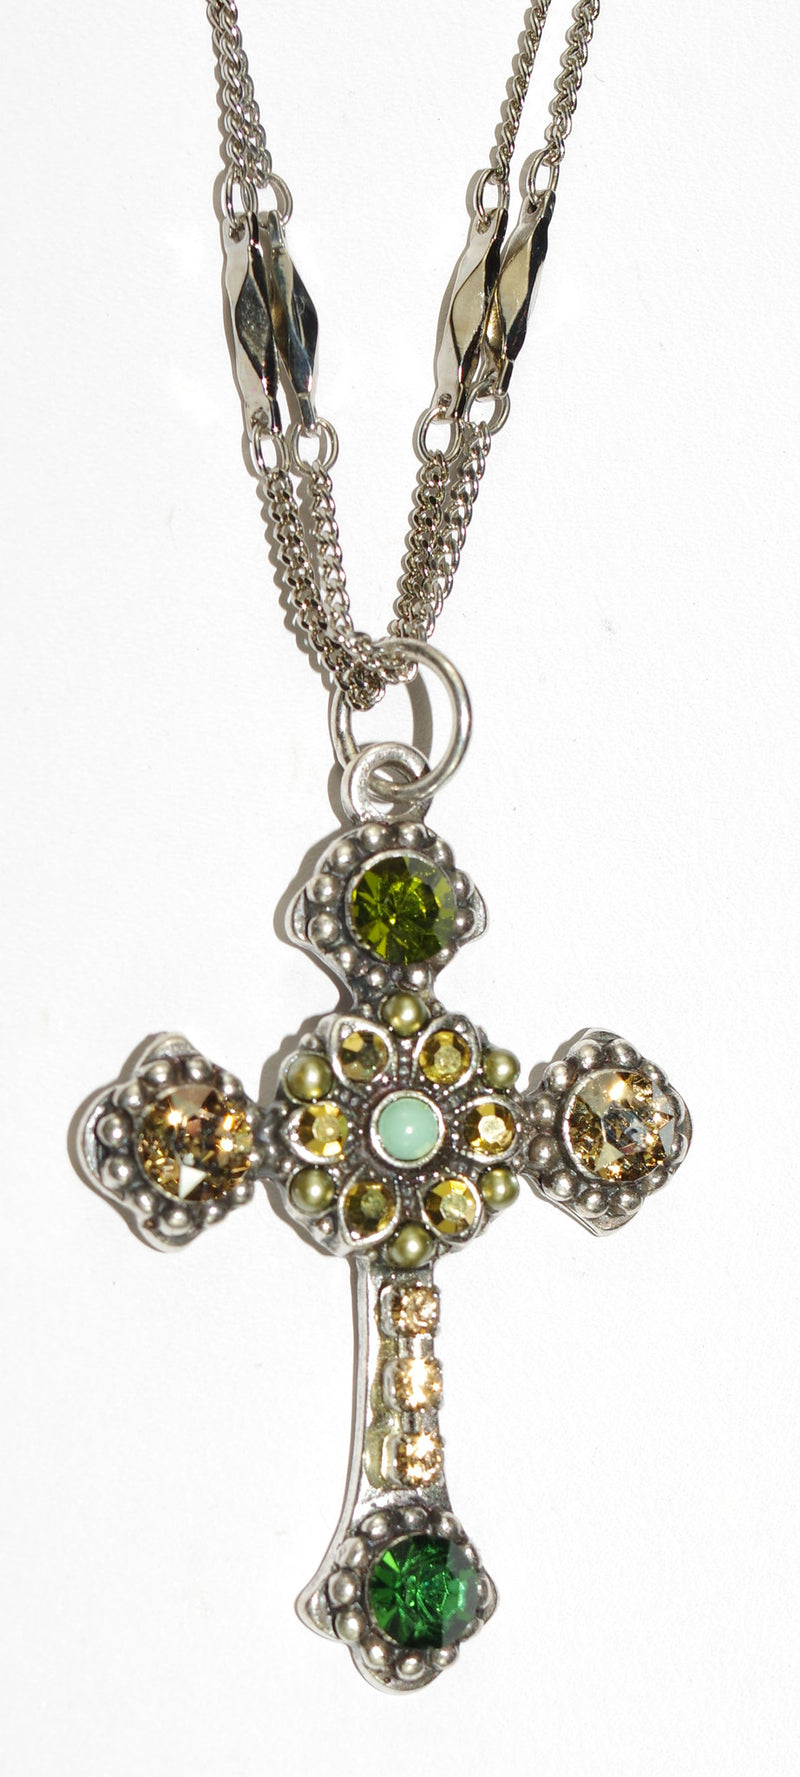 "MARIANA CROSS PENDANT GOLDFINGER: green, amber stones in silver setting, 18"" double chain"